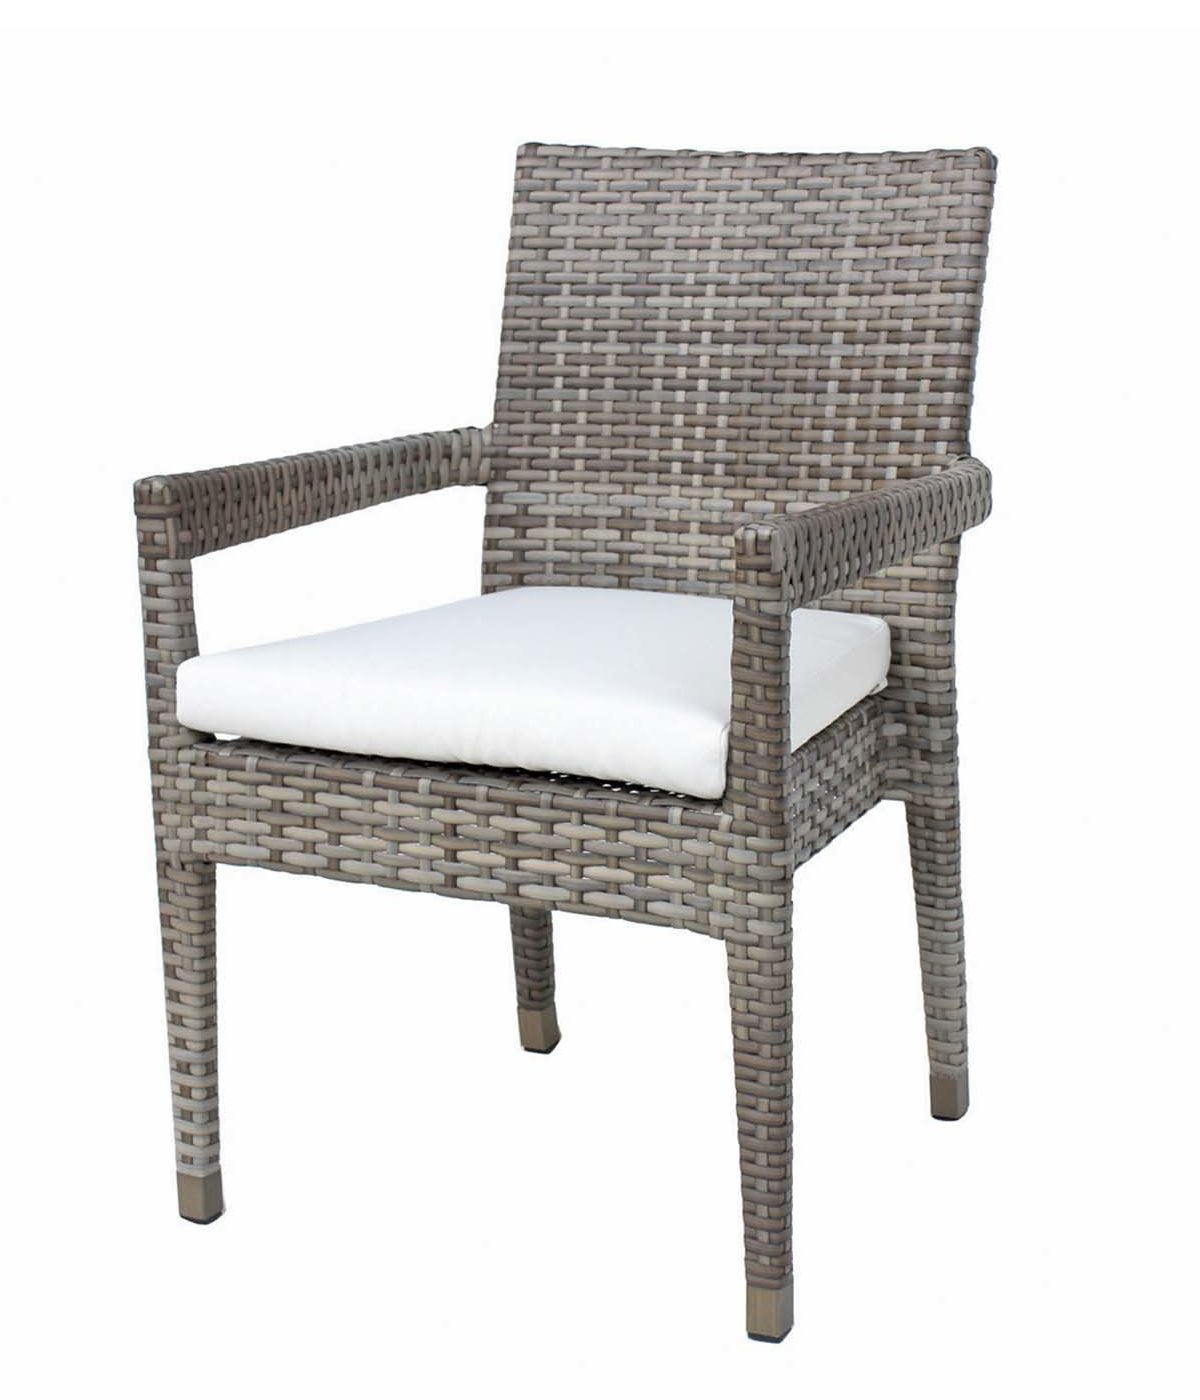 Tuscany dining arm chair in light brown wicker with cream cushion